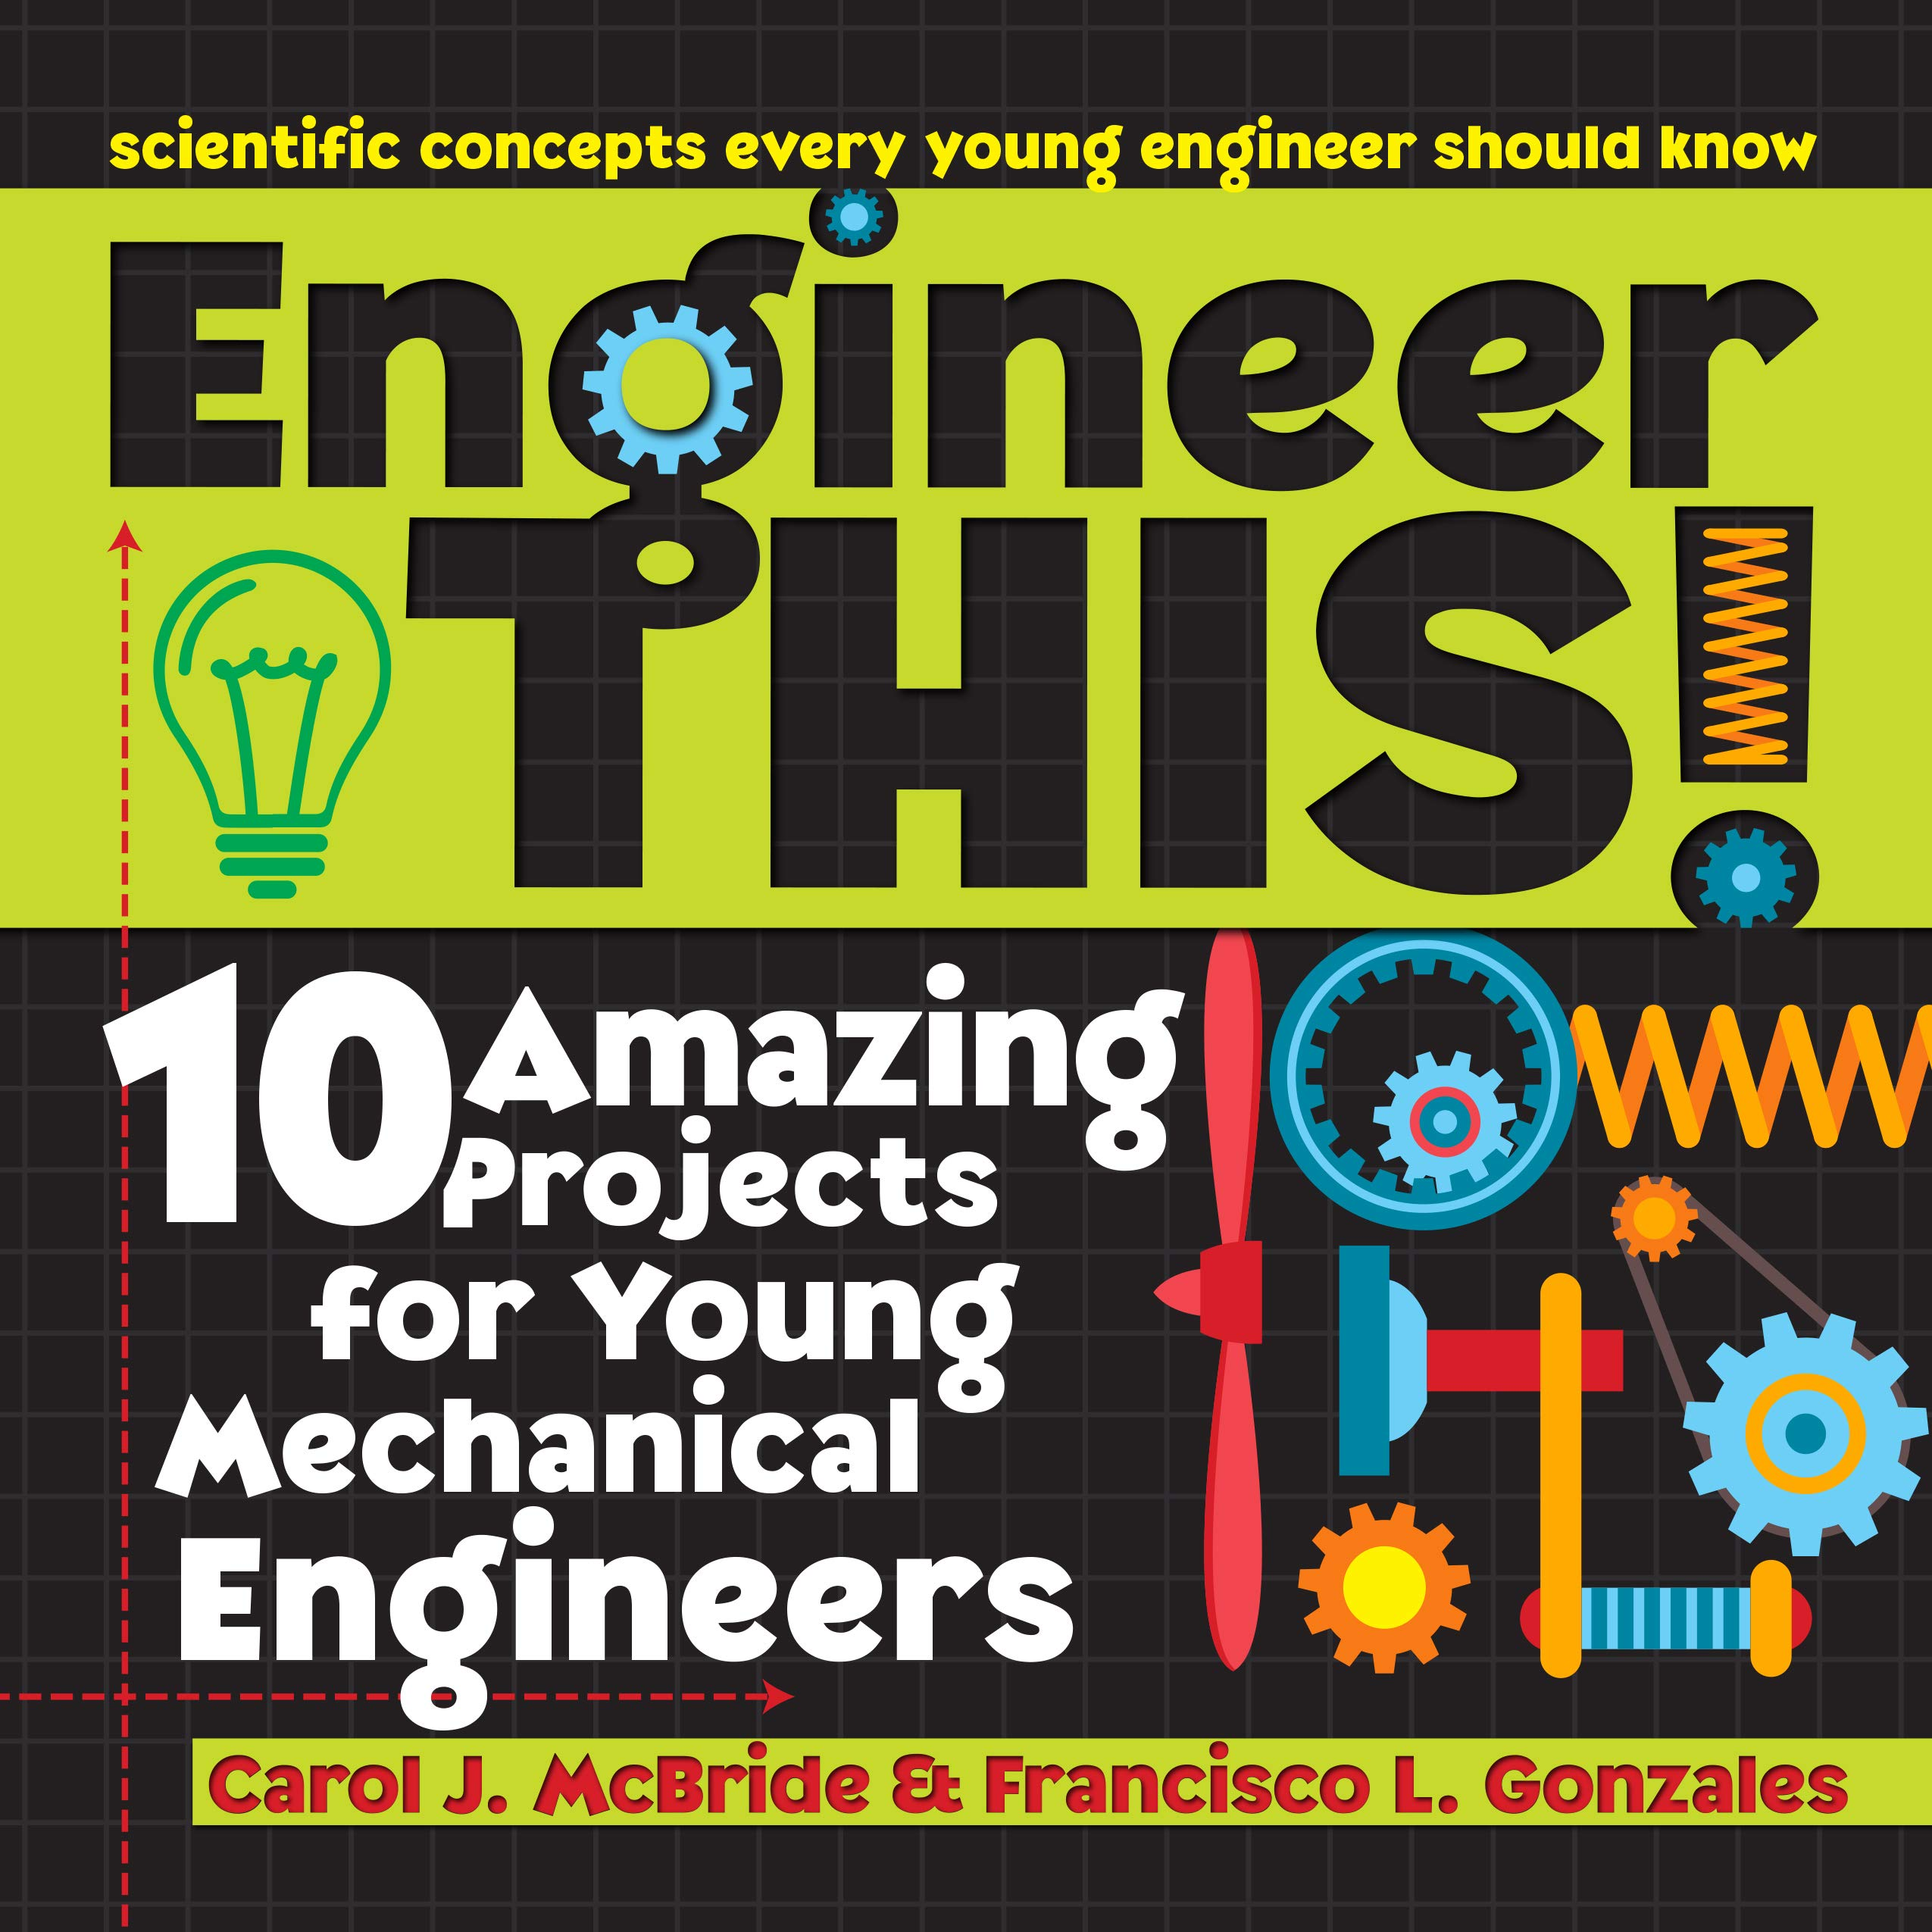 Engineer This 10 Amazing Projects For Young Mechanical Engineers Mcbride Carol Gonzales Francisco 9781618216298 Amazon Com Books